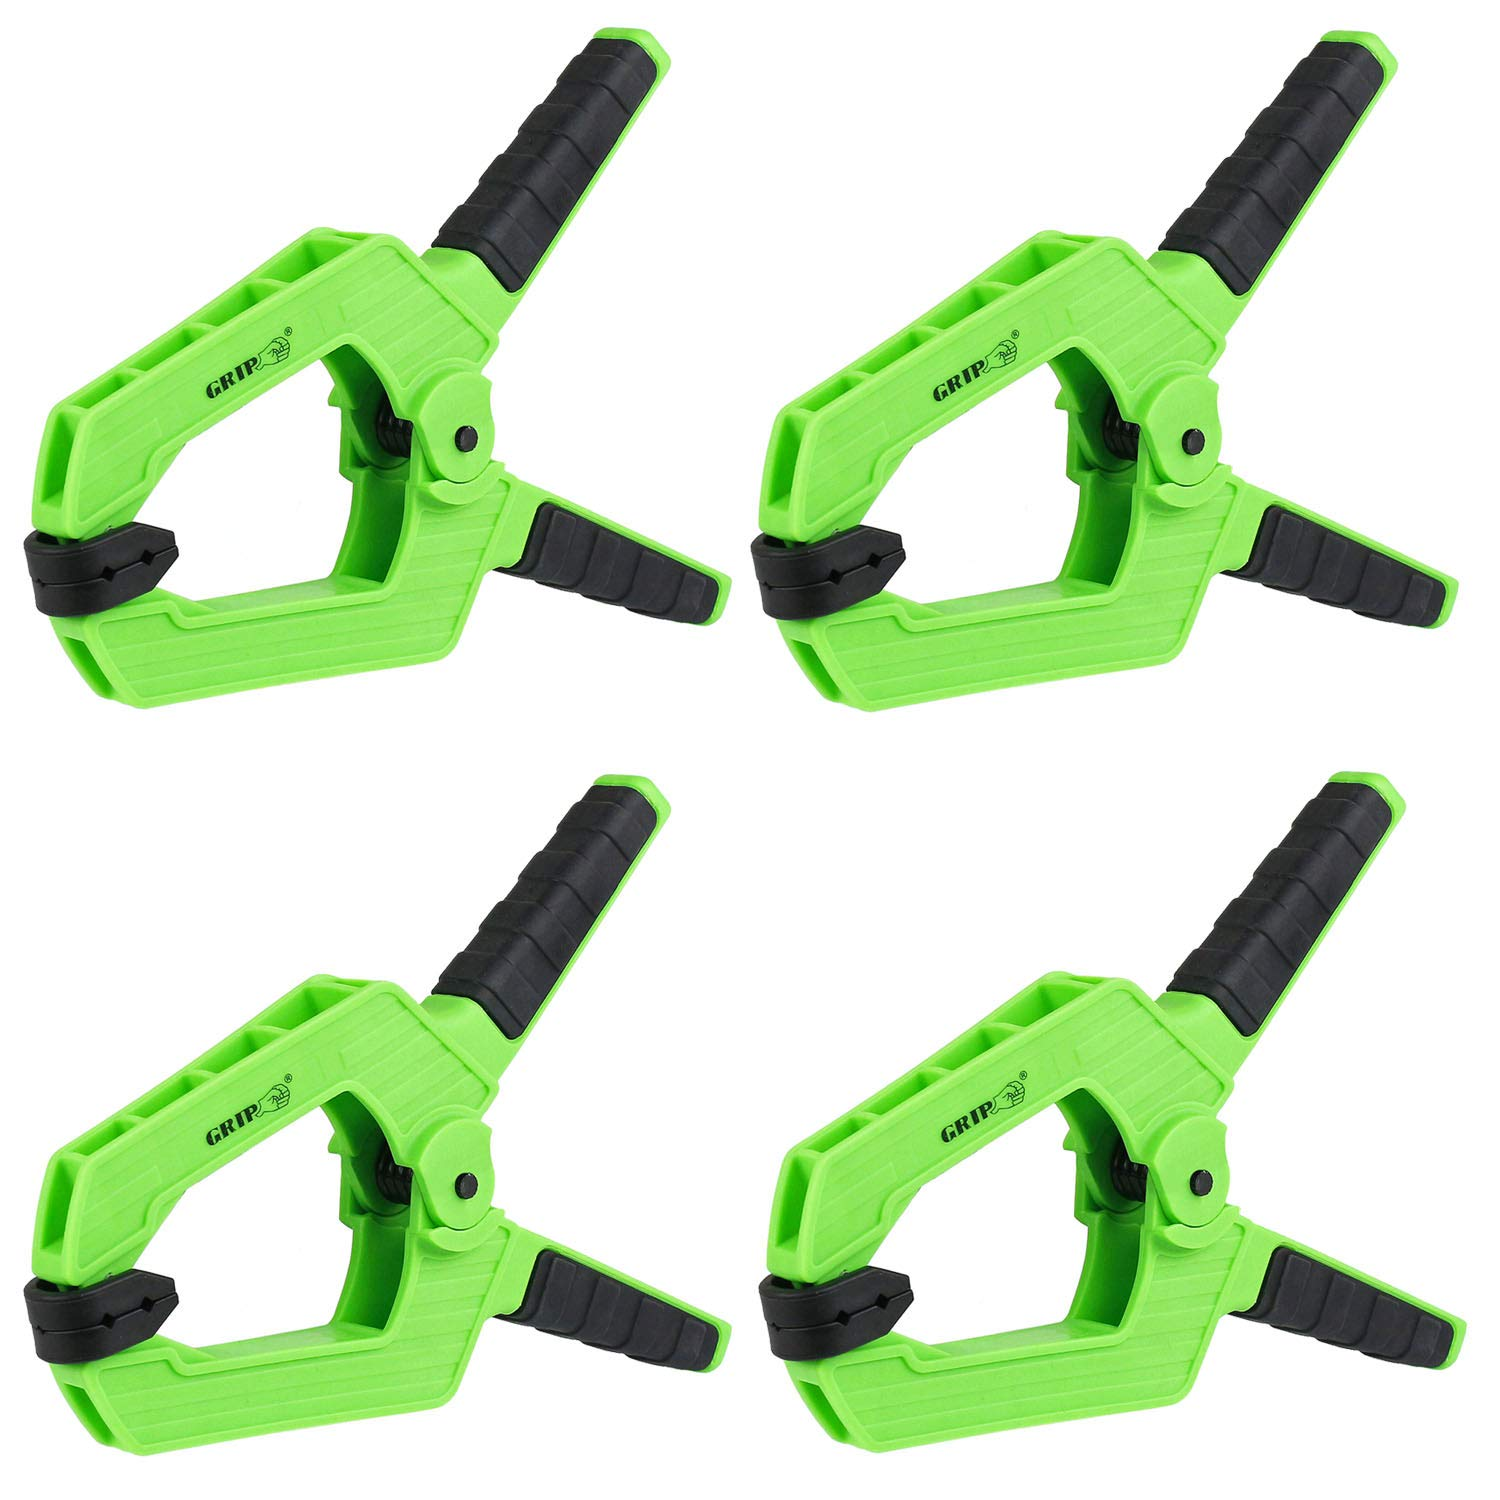 4 Pack Heavy Duty 9'' Spring Clamps Thermoplastic Anti-Slip Grip Tools 34009